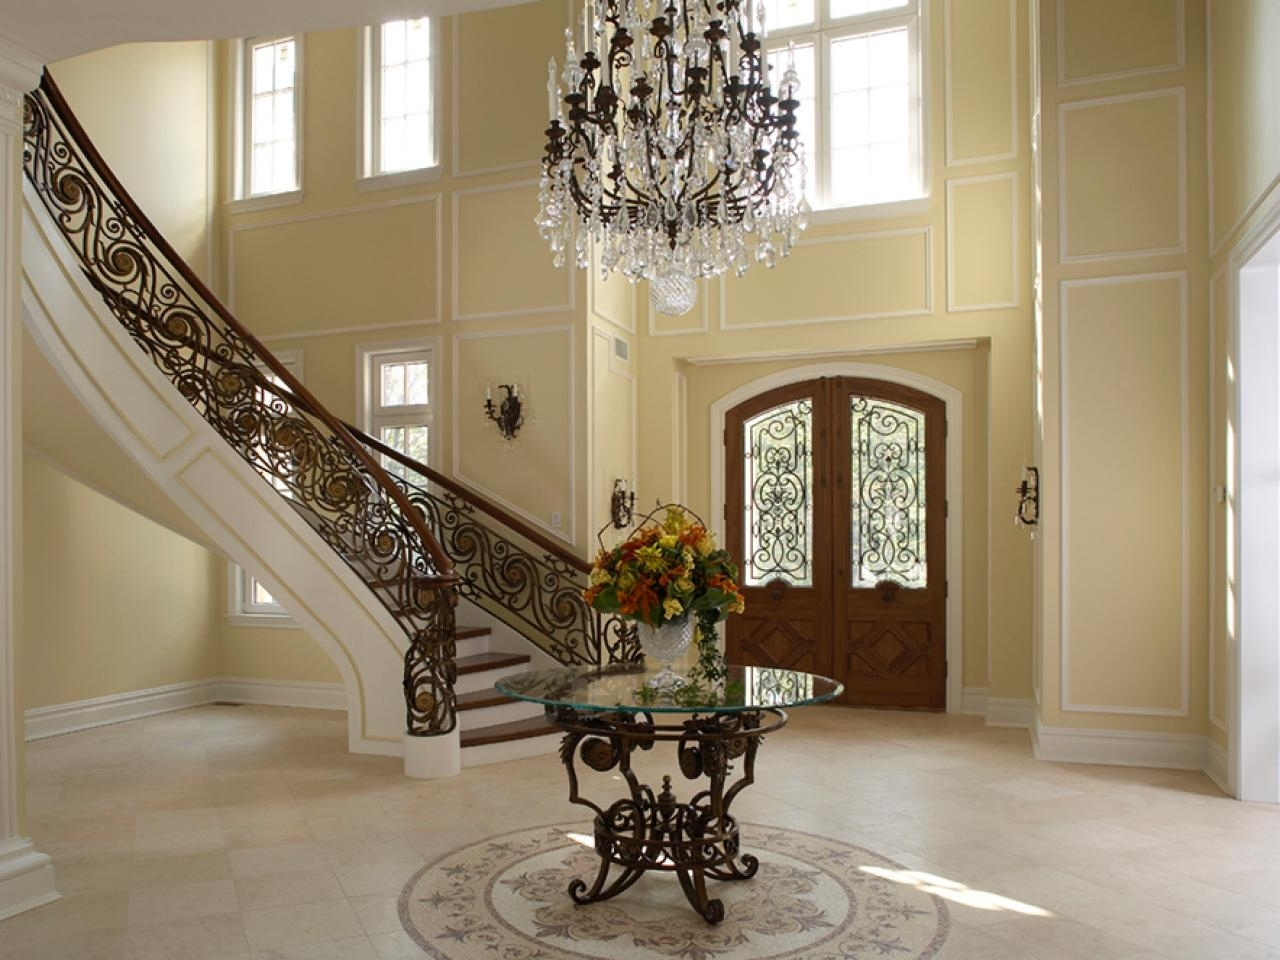 2 story foyer decorating ideas - trgn #529e41bf2521